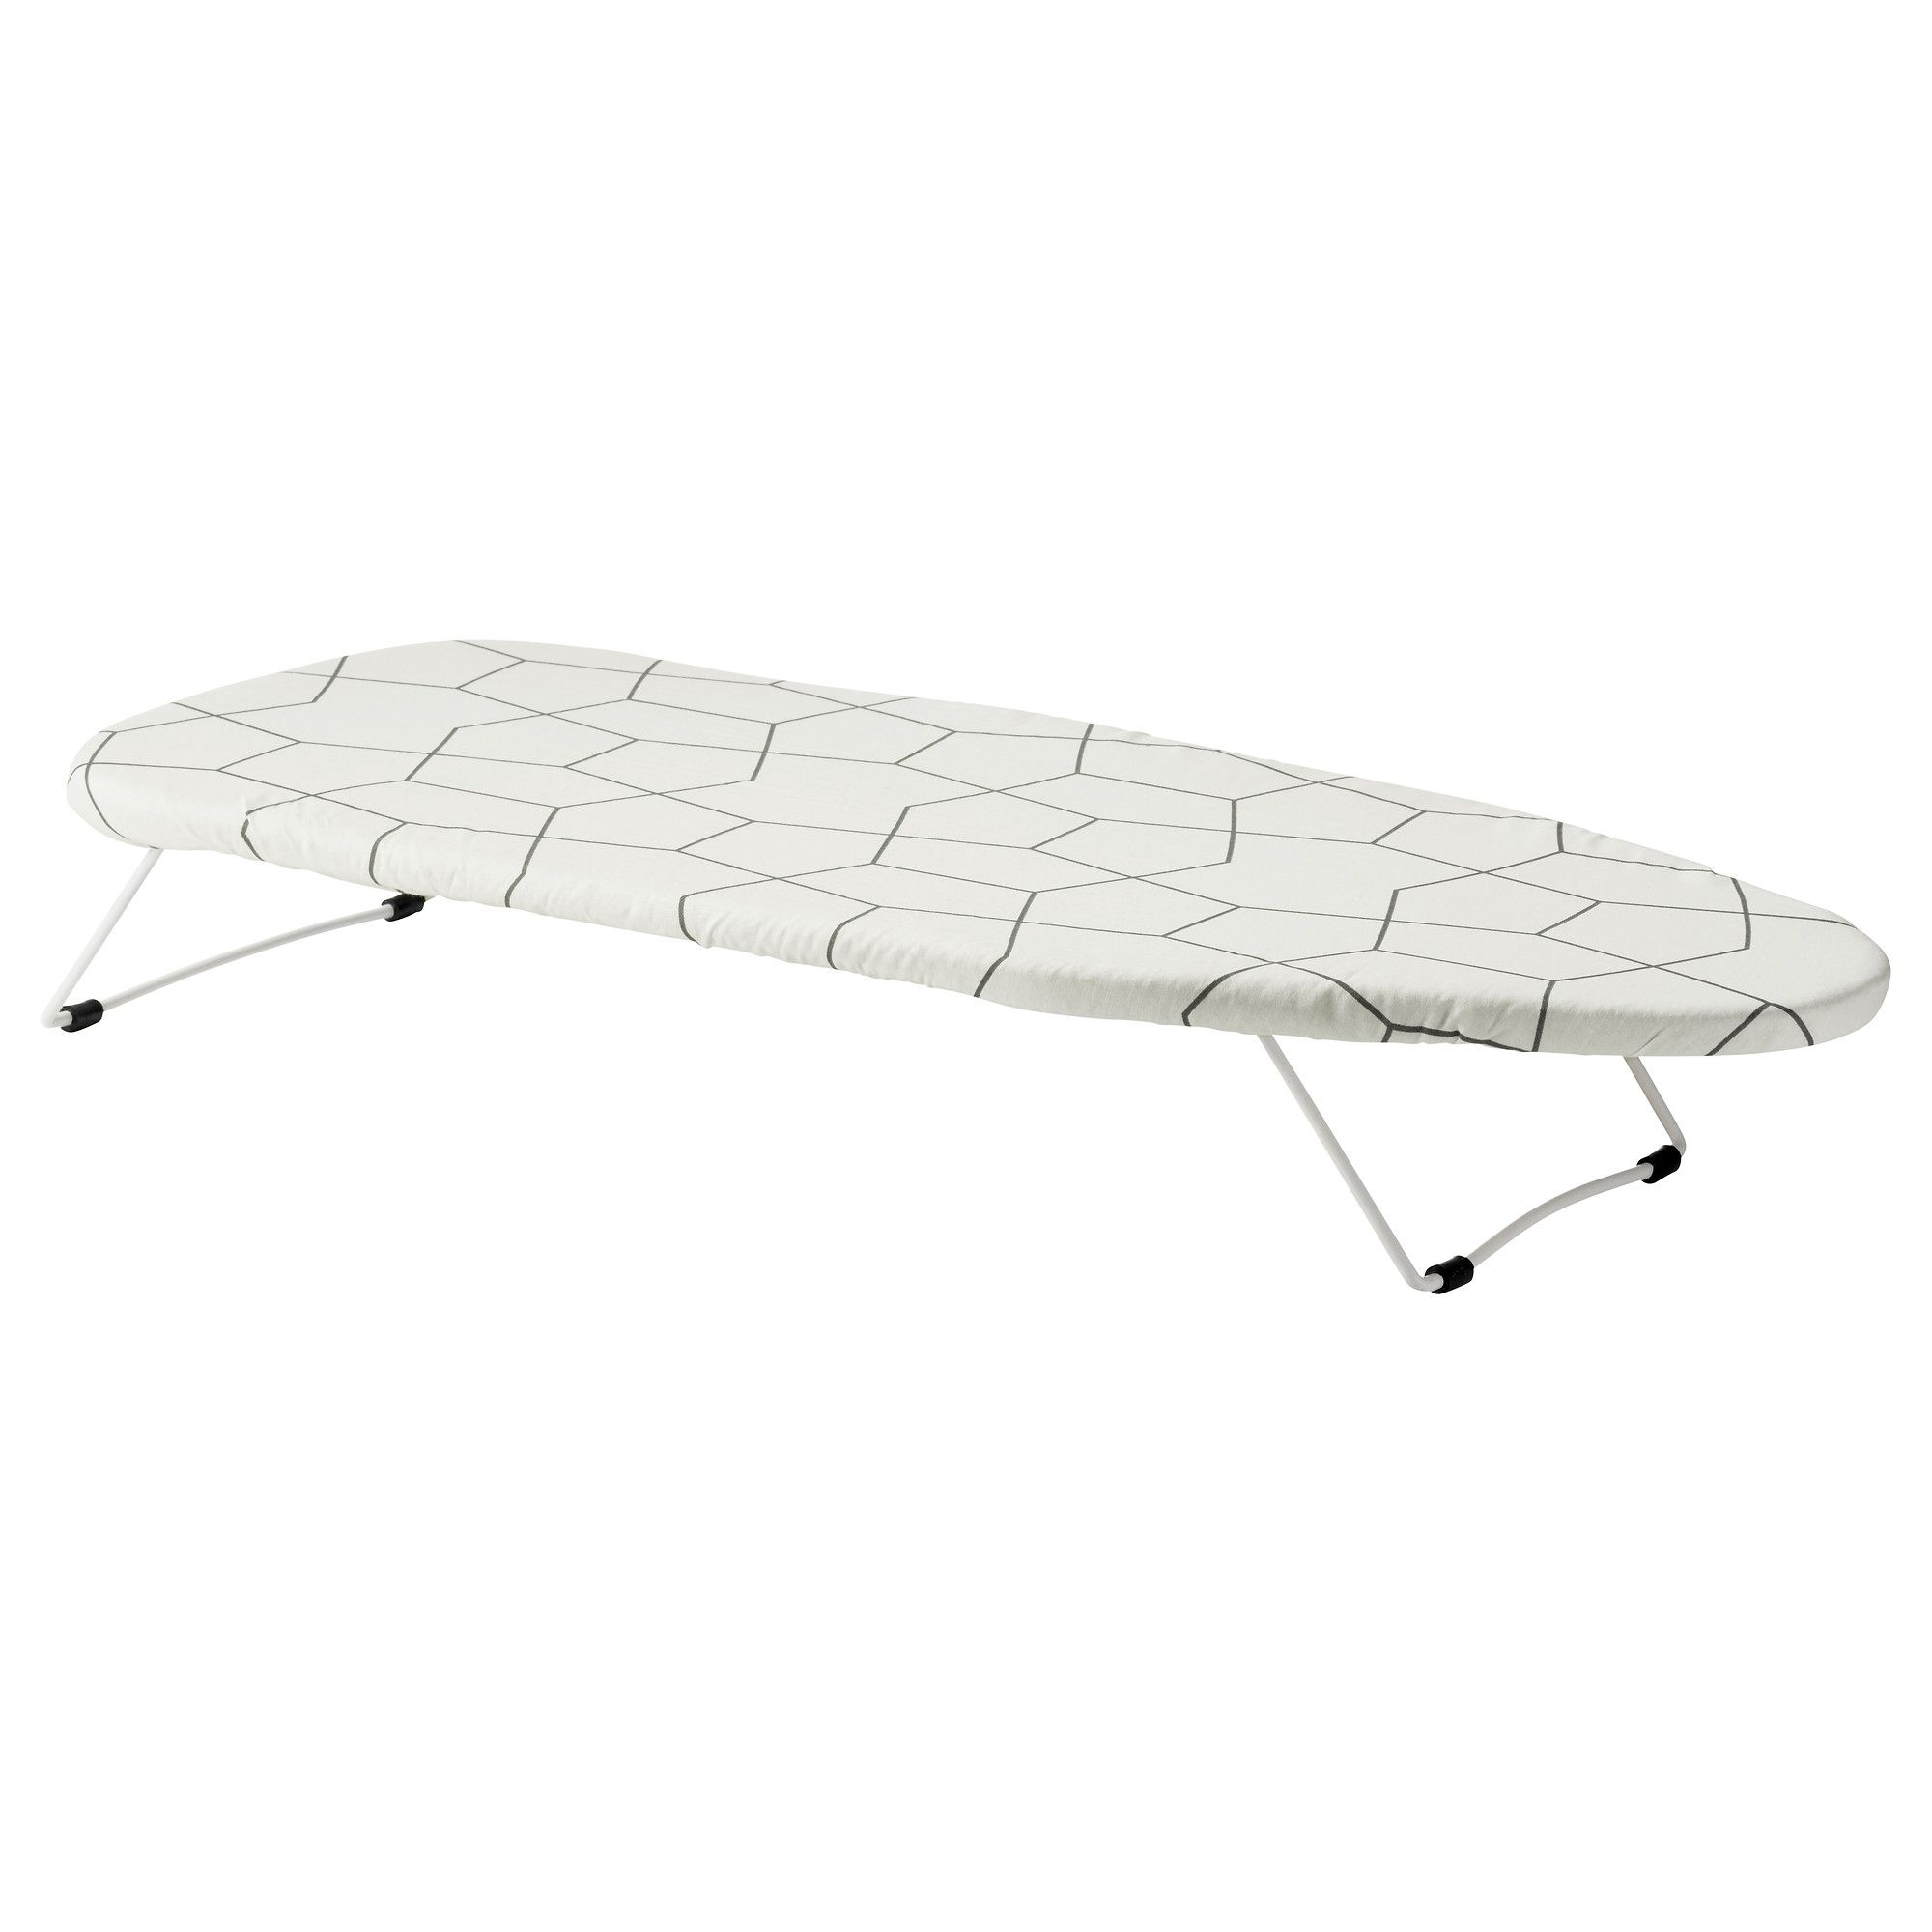 Jall Tabletop Ironing Board 28 X12 73x32 Cm Tabletop Ironing Board Iron Board Ironing Board Tables